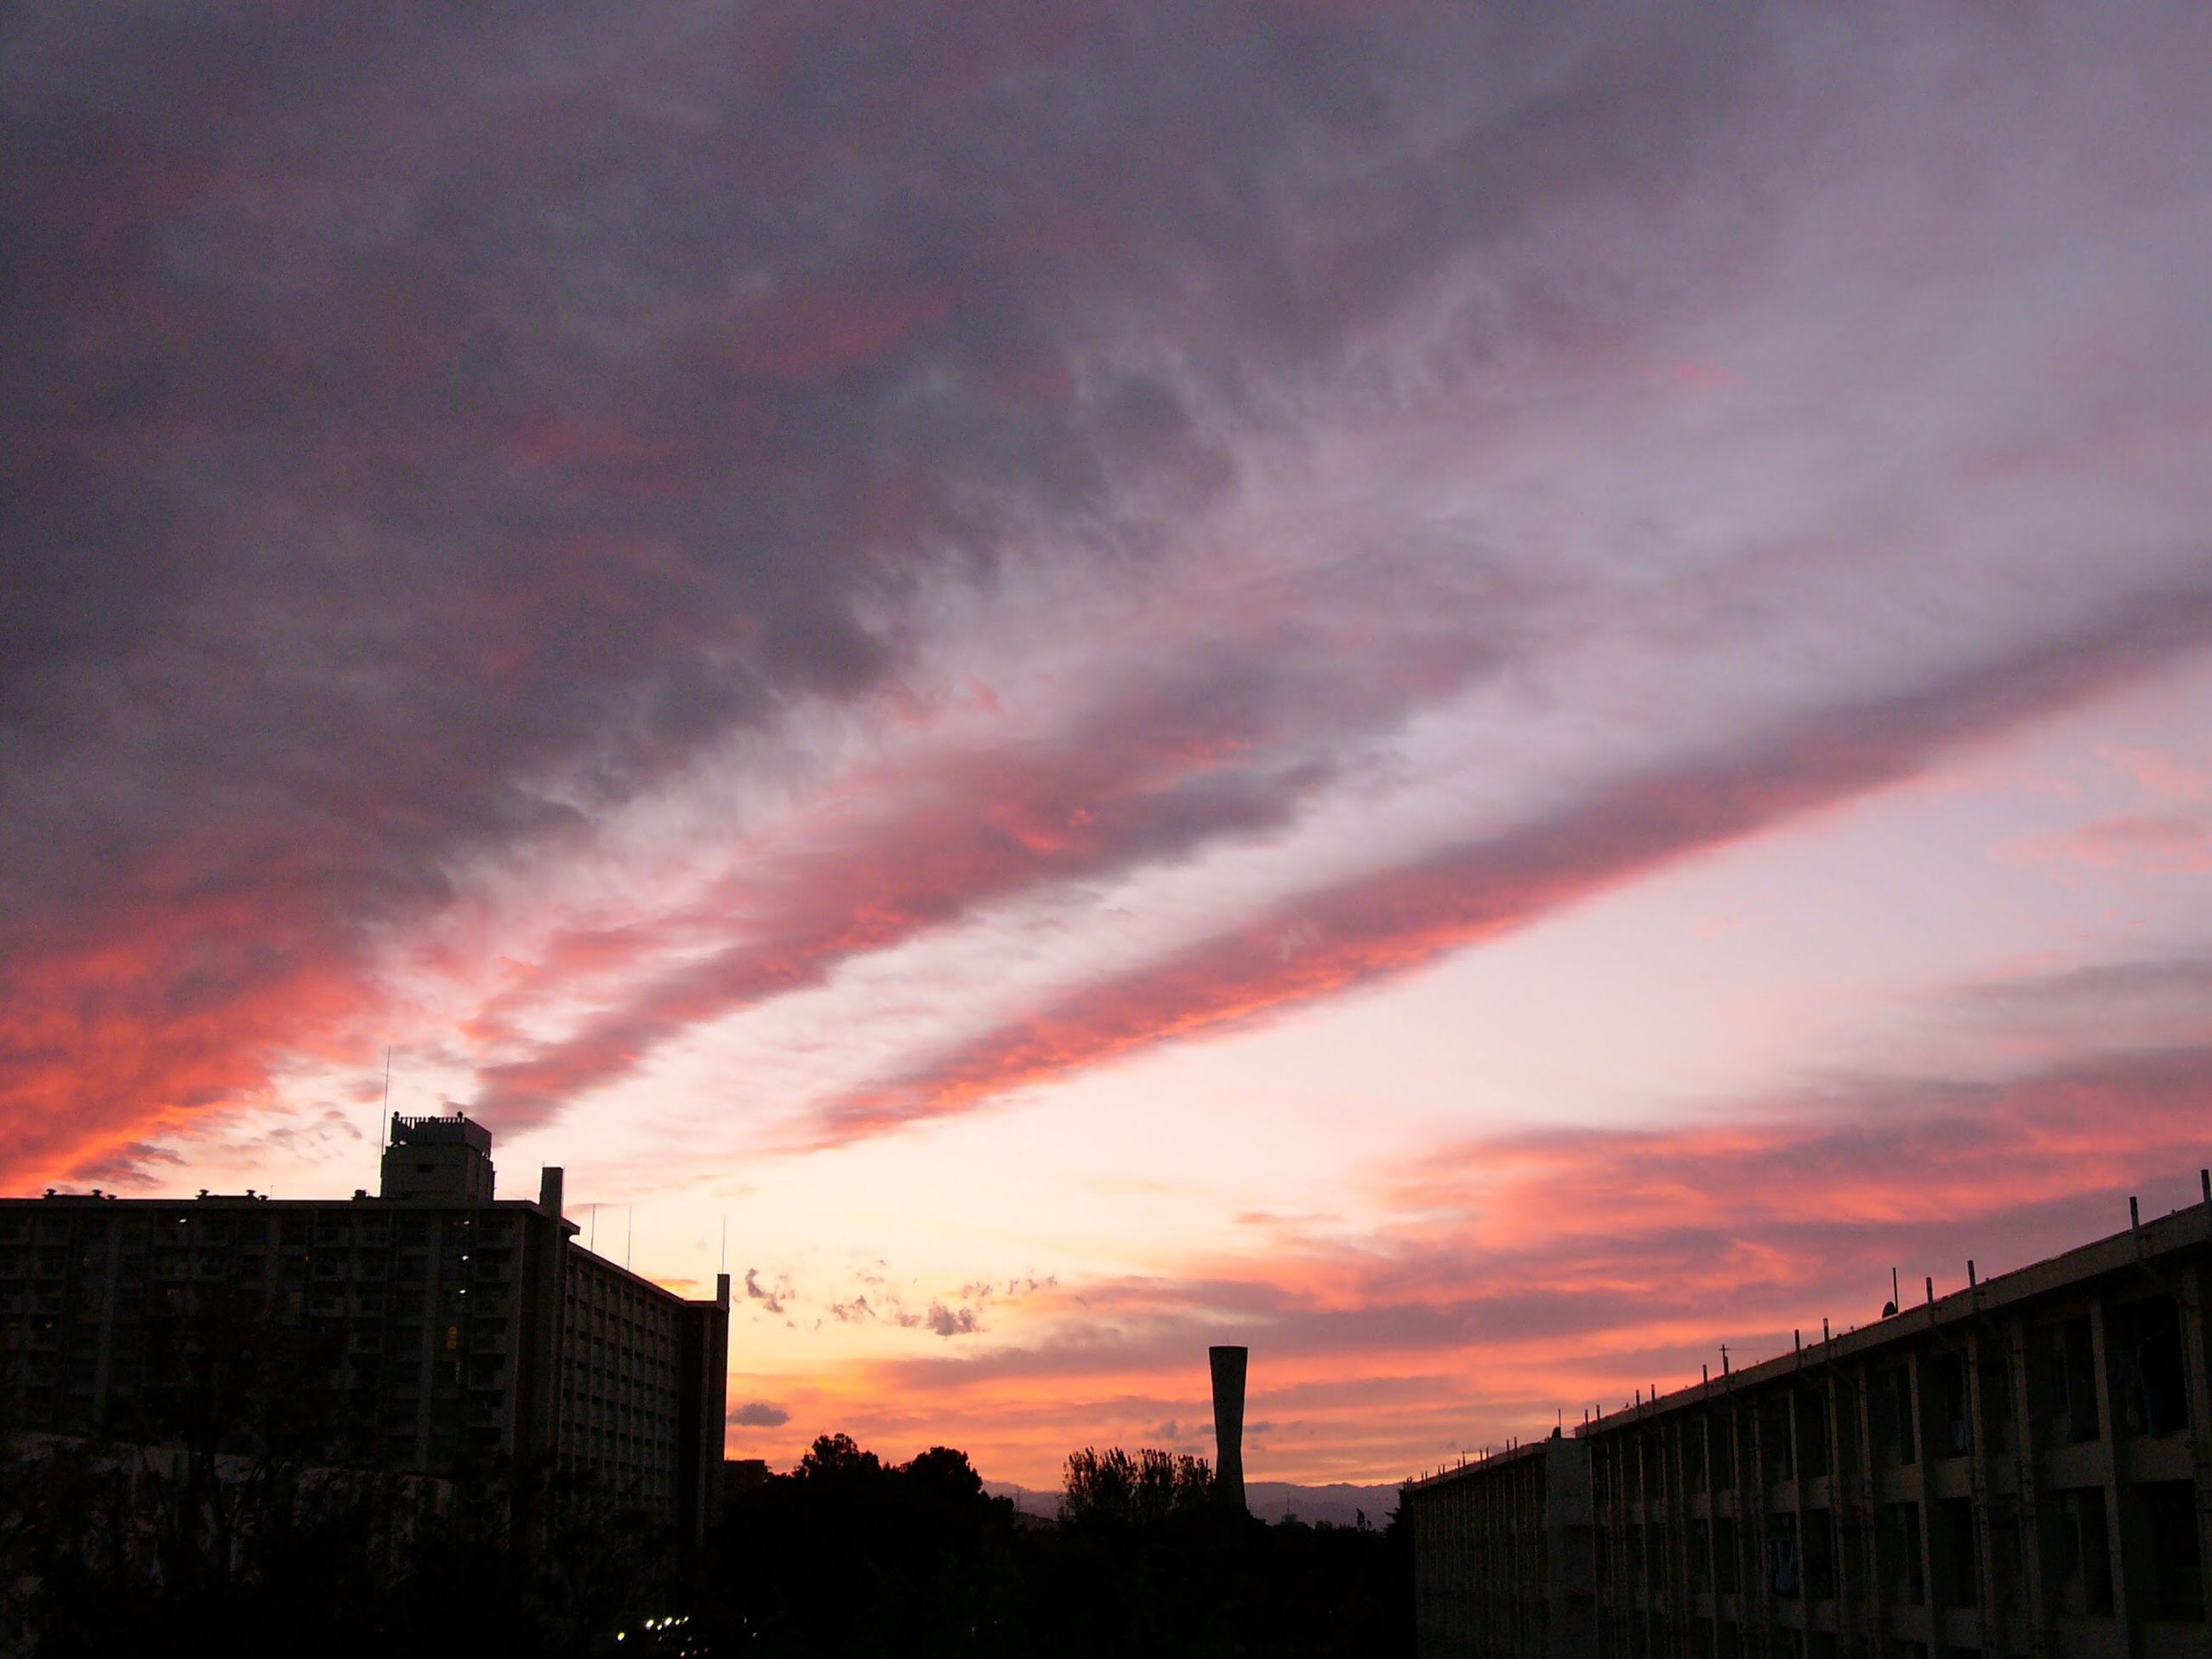 cloud - sky, architecture, building exterior, sunset, built structure, dramatic sky, sky, city, silhouette, no people, beauty in nature, outdoors, nature, cityscape